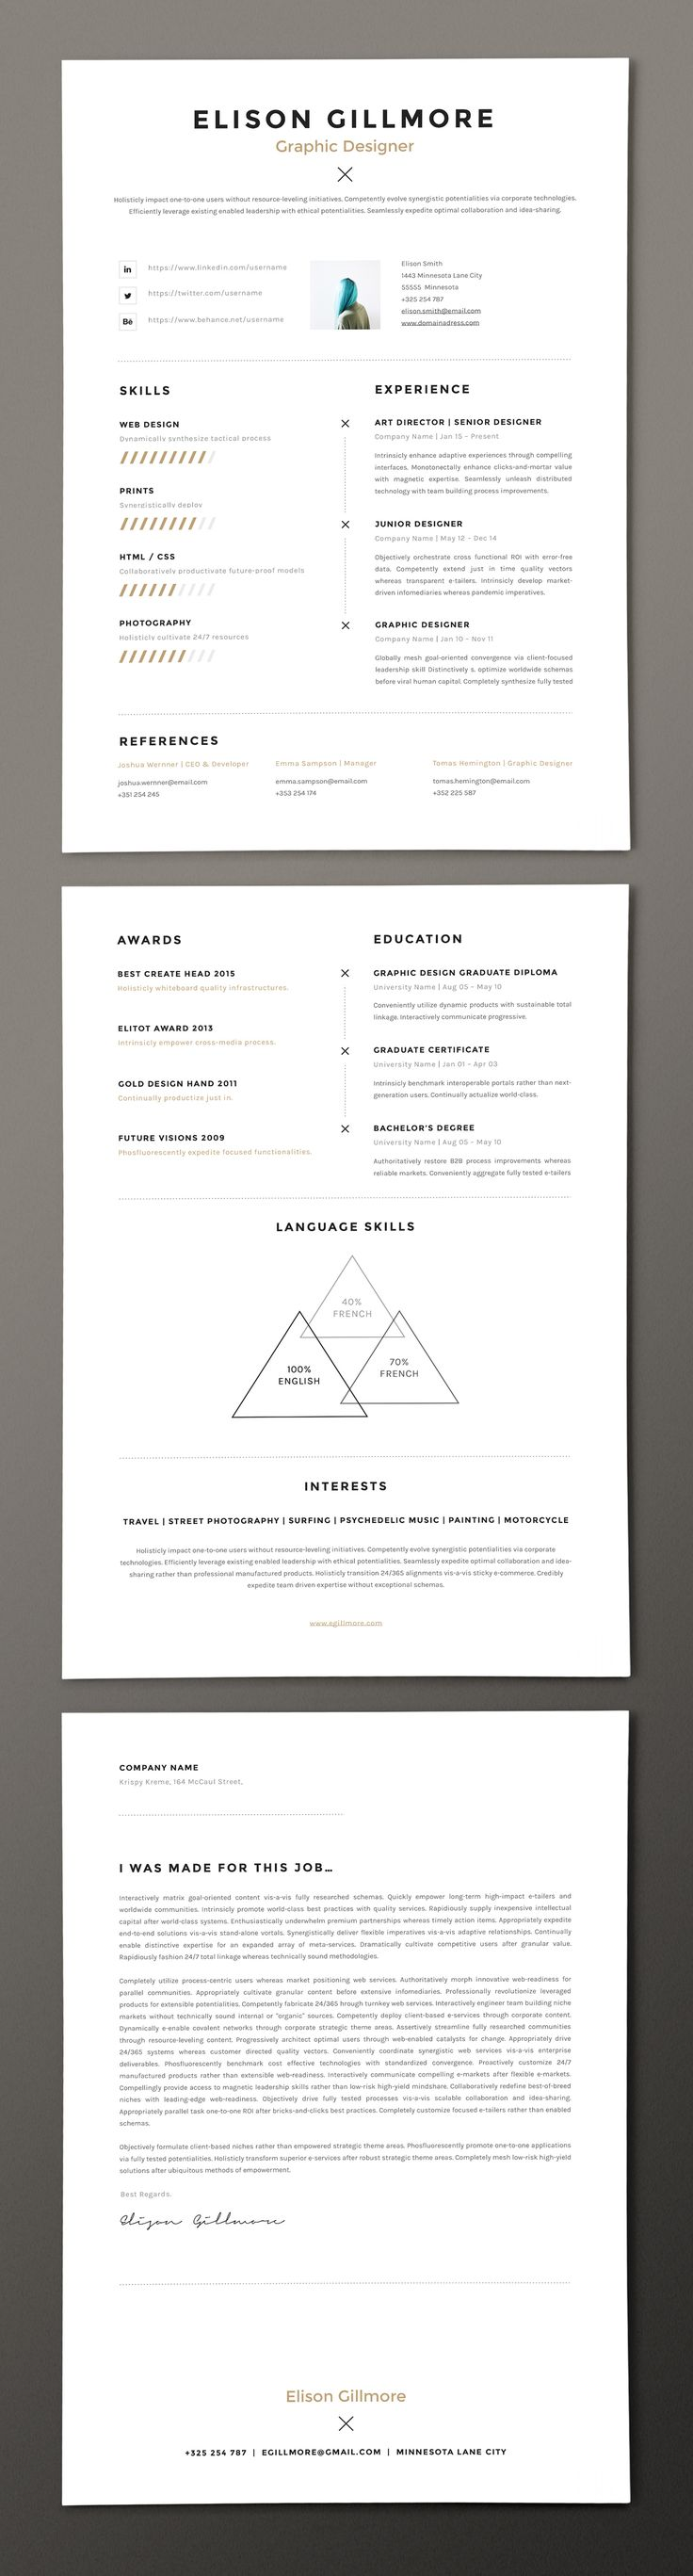 best ideas about cv pdf format lettre de unique resume cv template pages word on behance